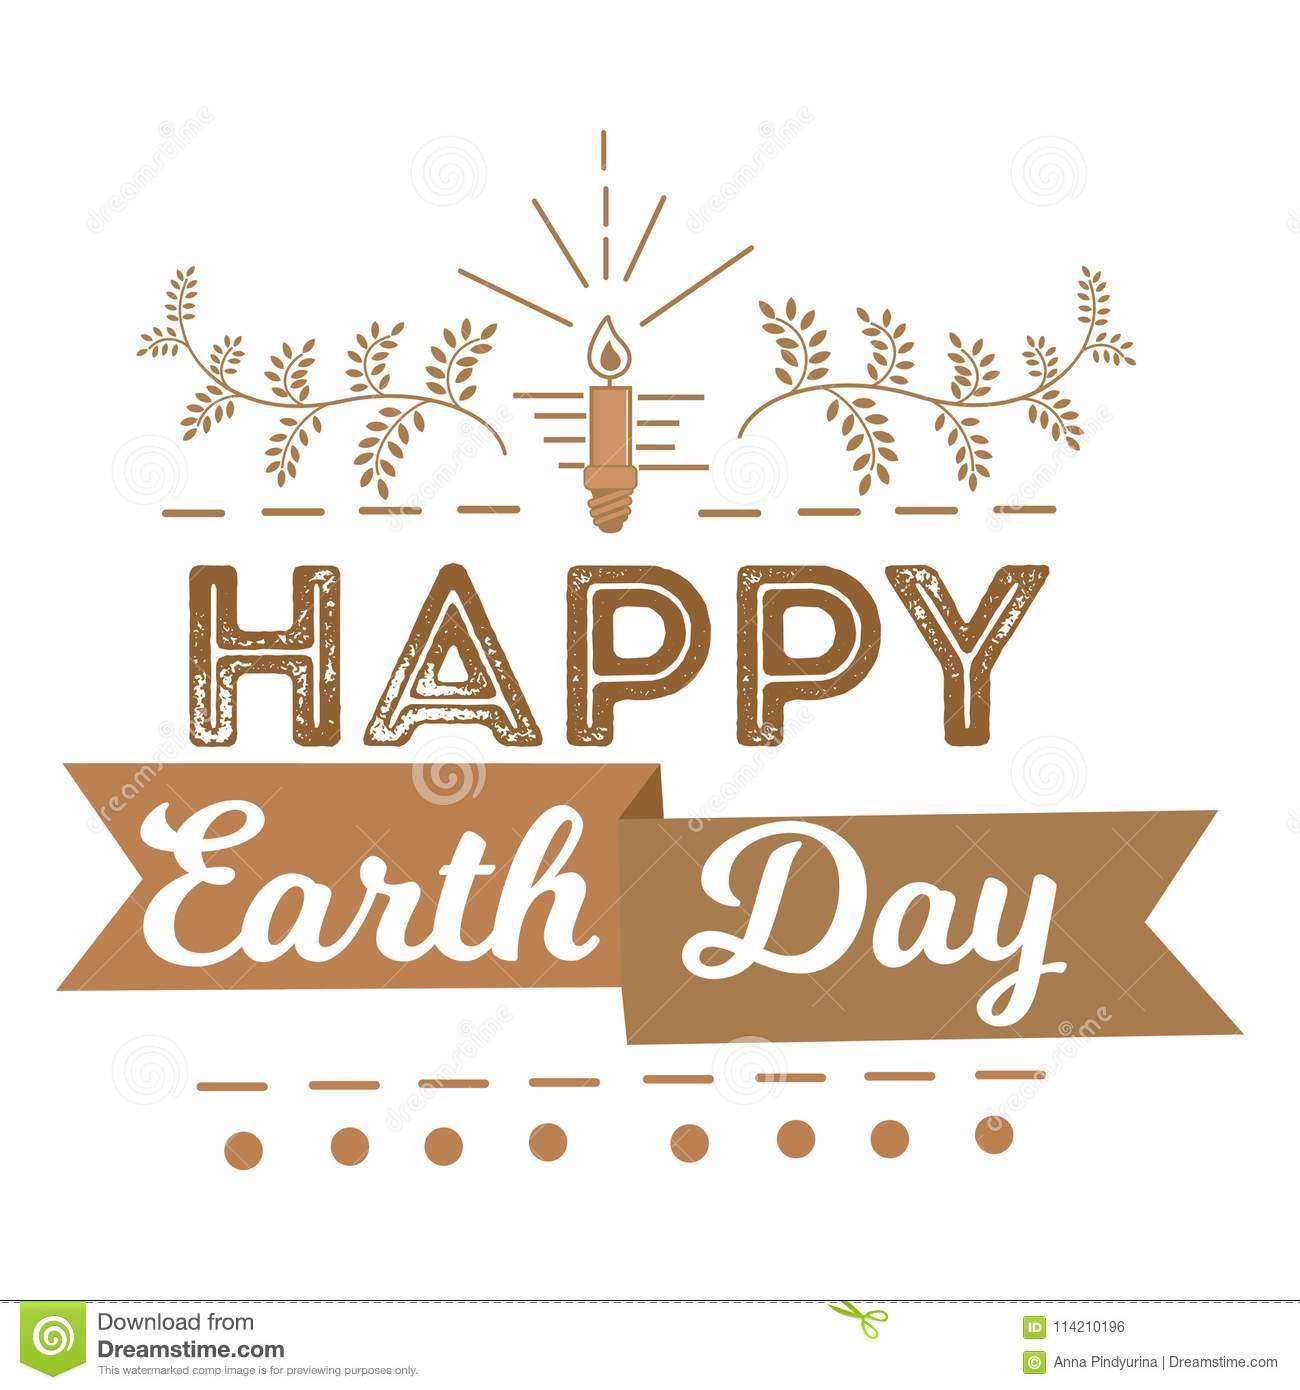 April 22 world earth day logotypes set for greeting cards or banner logotypes set for greeting cards or banner with text m4hsunfo